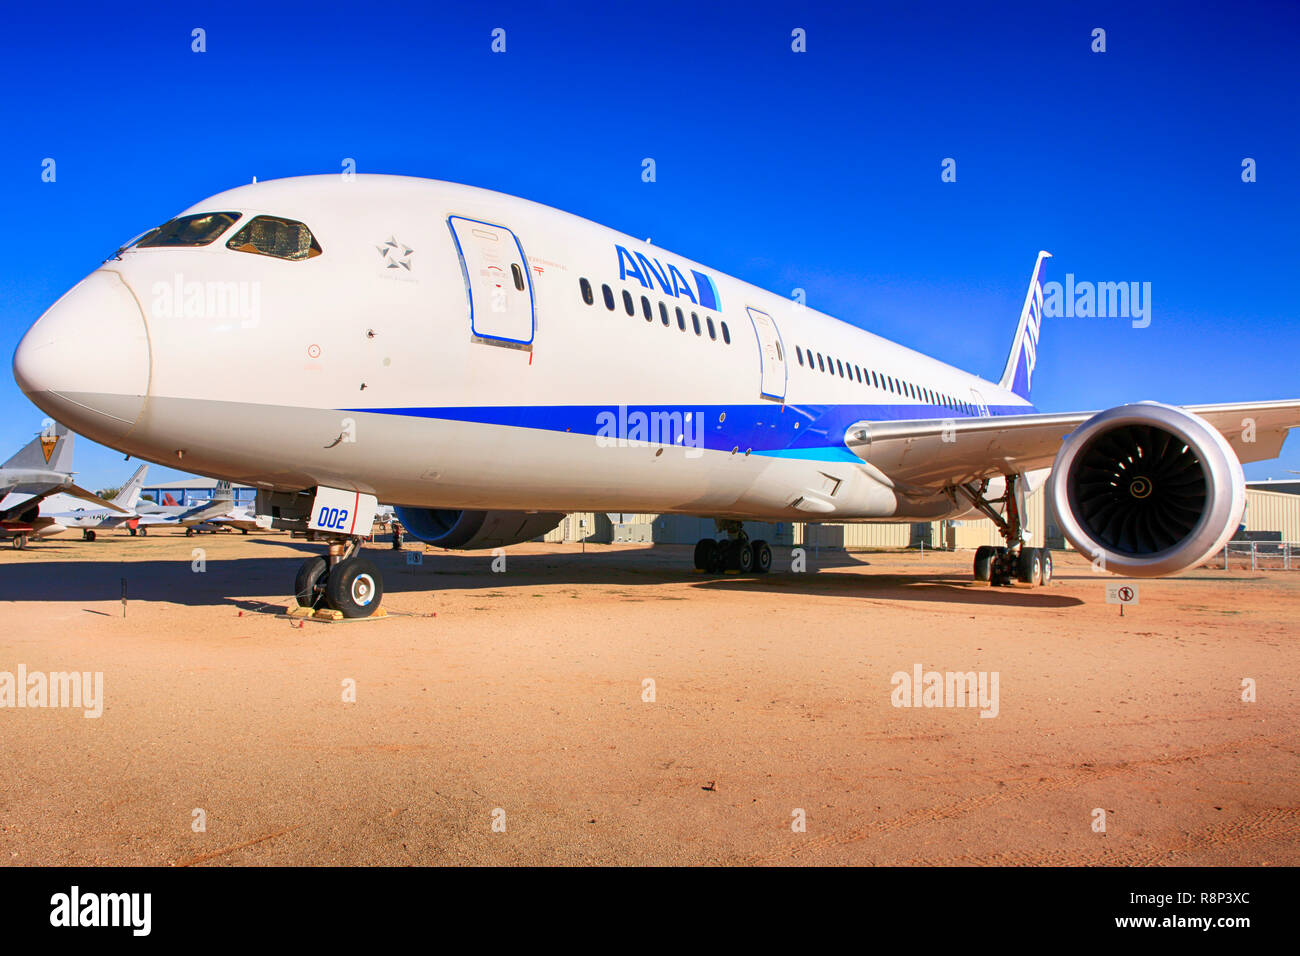 2009 Boeing 767-8 Dreamliner prototype airliner on display at the Pima Air & Space Museum in Tucson, AZ Stock Photo